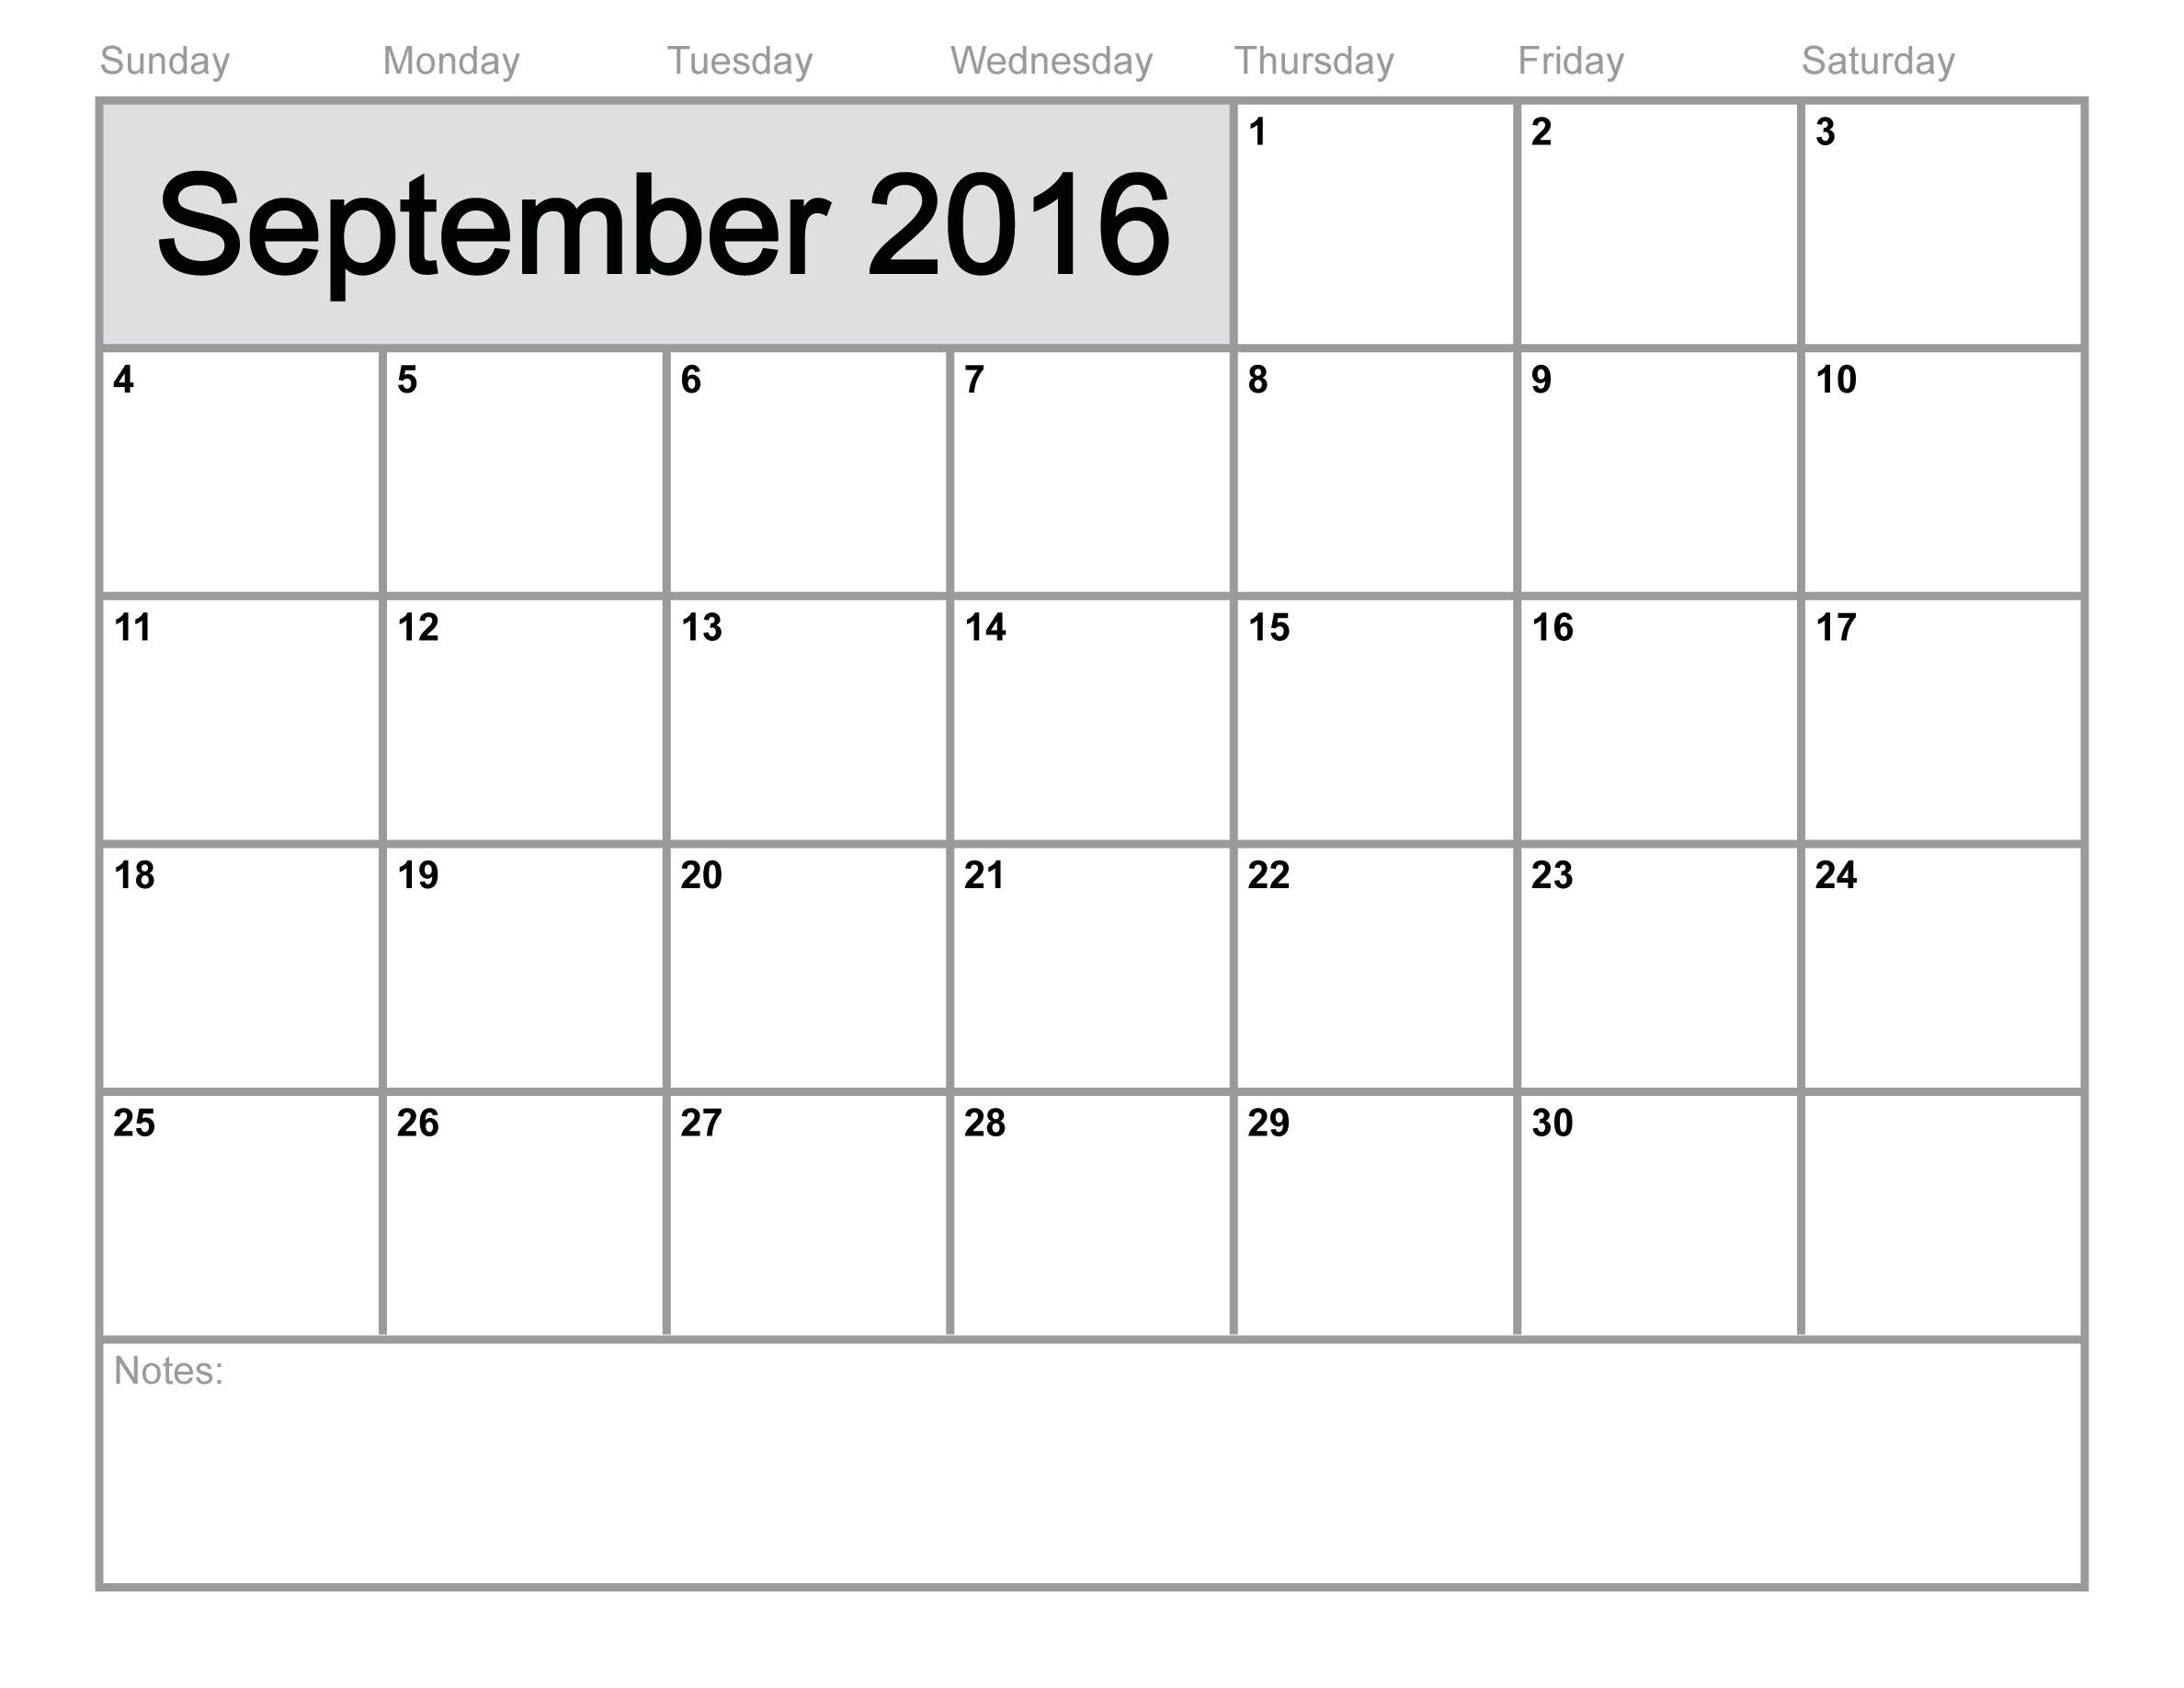 Free Download September 2016 Calendar Template Printable From Our